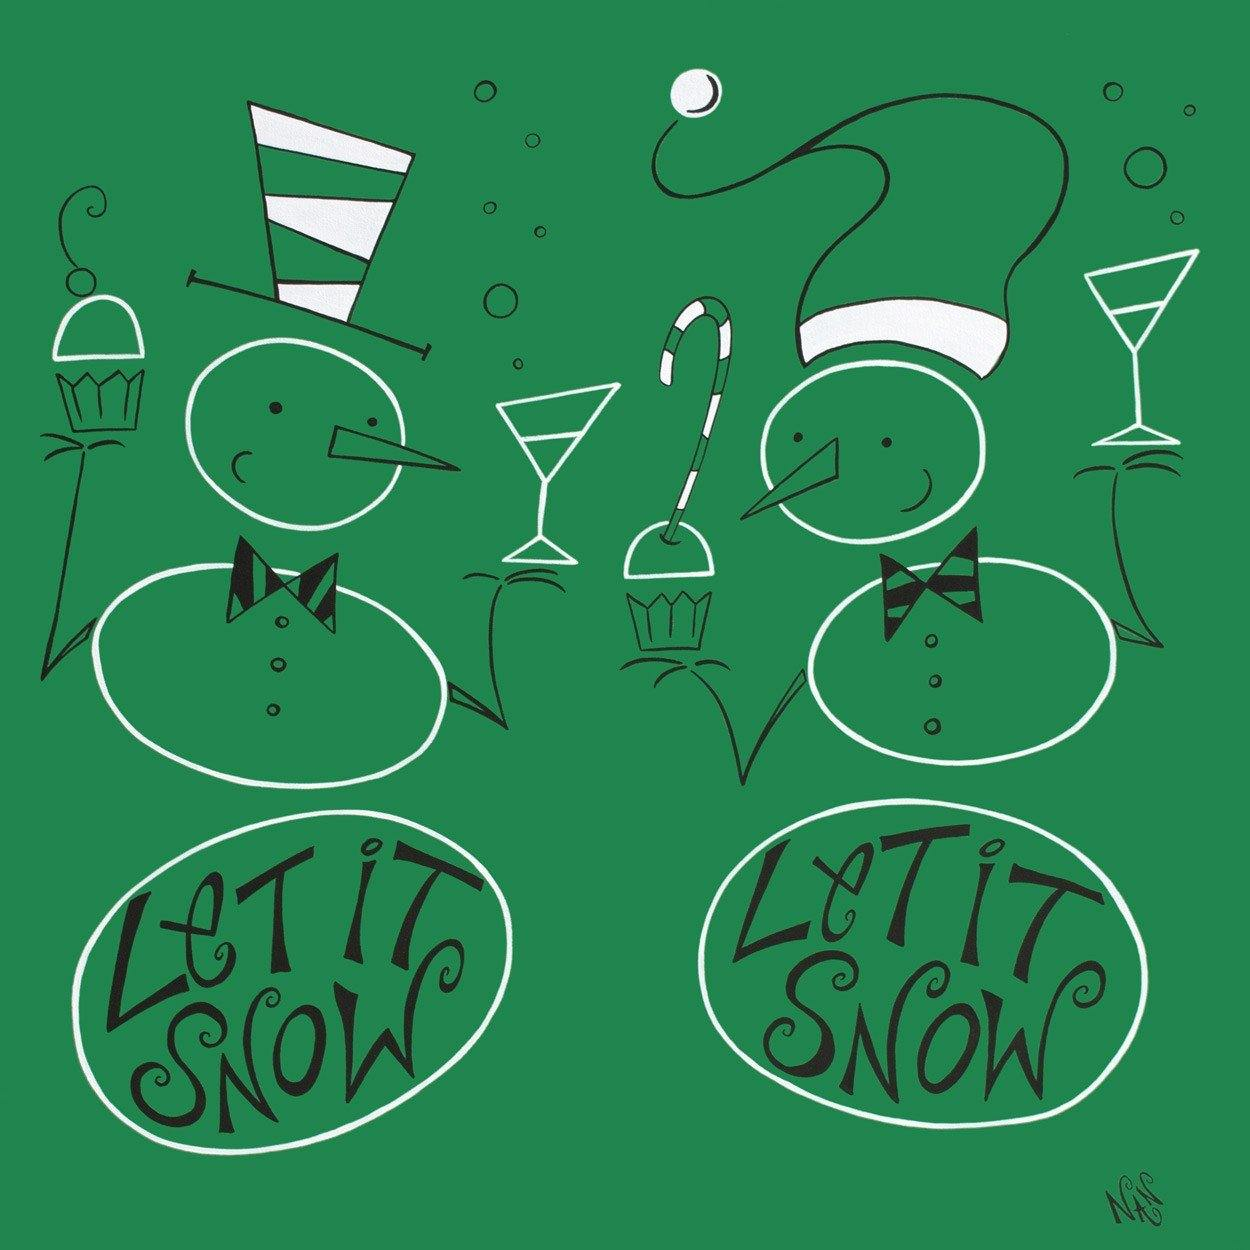 Let It Snow - Prints | Fine Art and Limited Edition Prints | The Art Of Nan Coffey